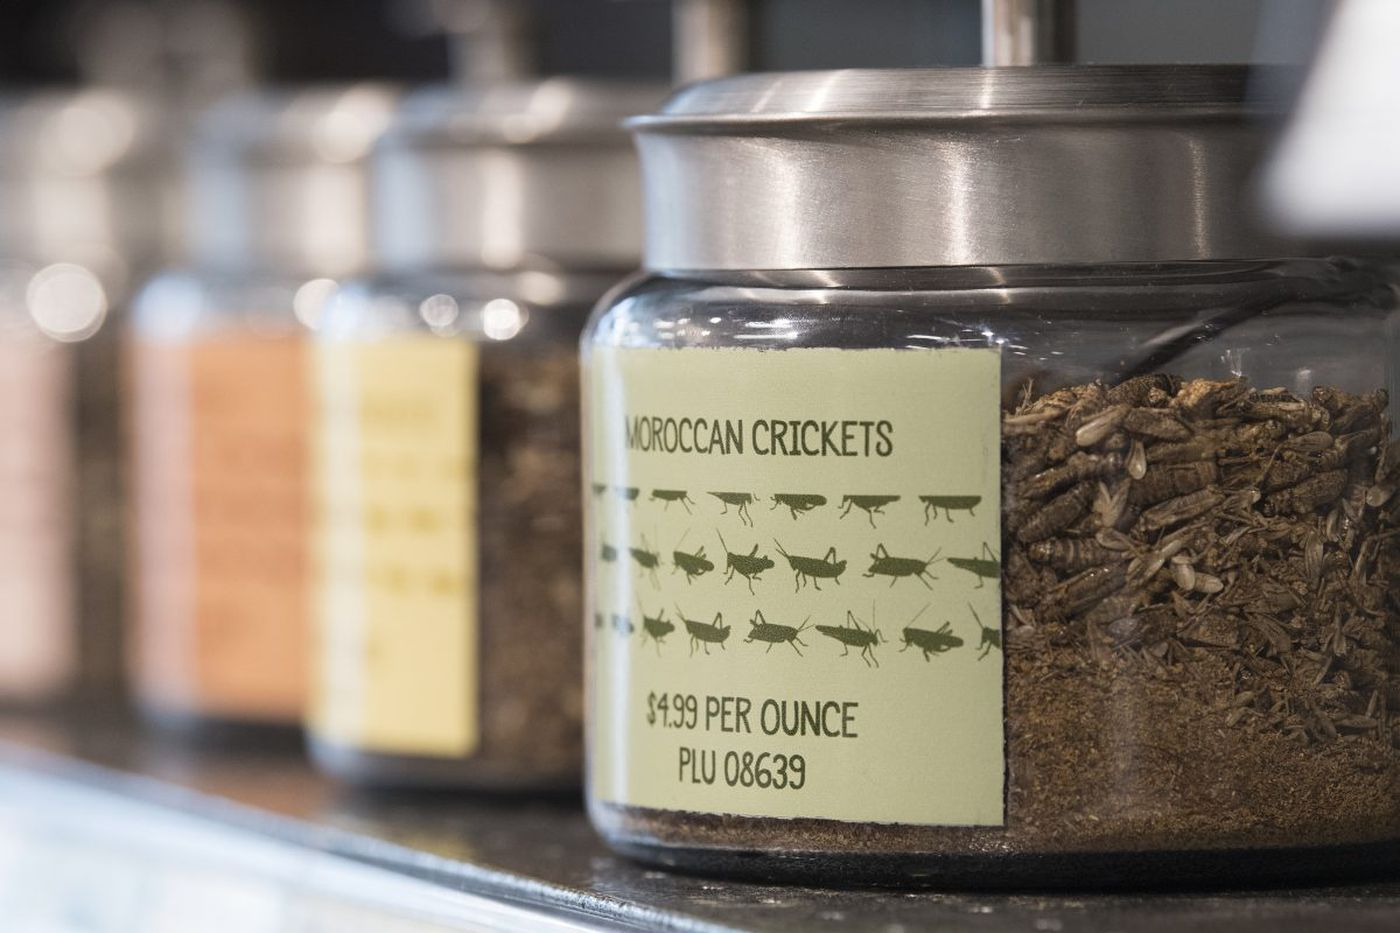 Whether it's chips, crickets or vegetables, Pennsylvanians are buying more organic food than ever